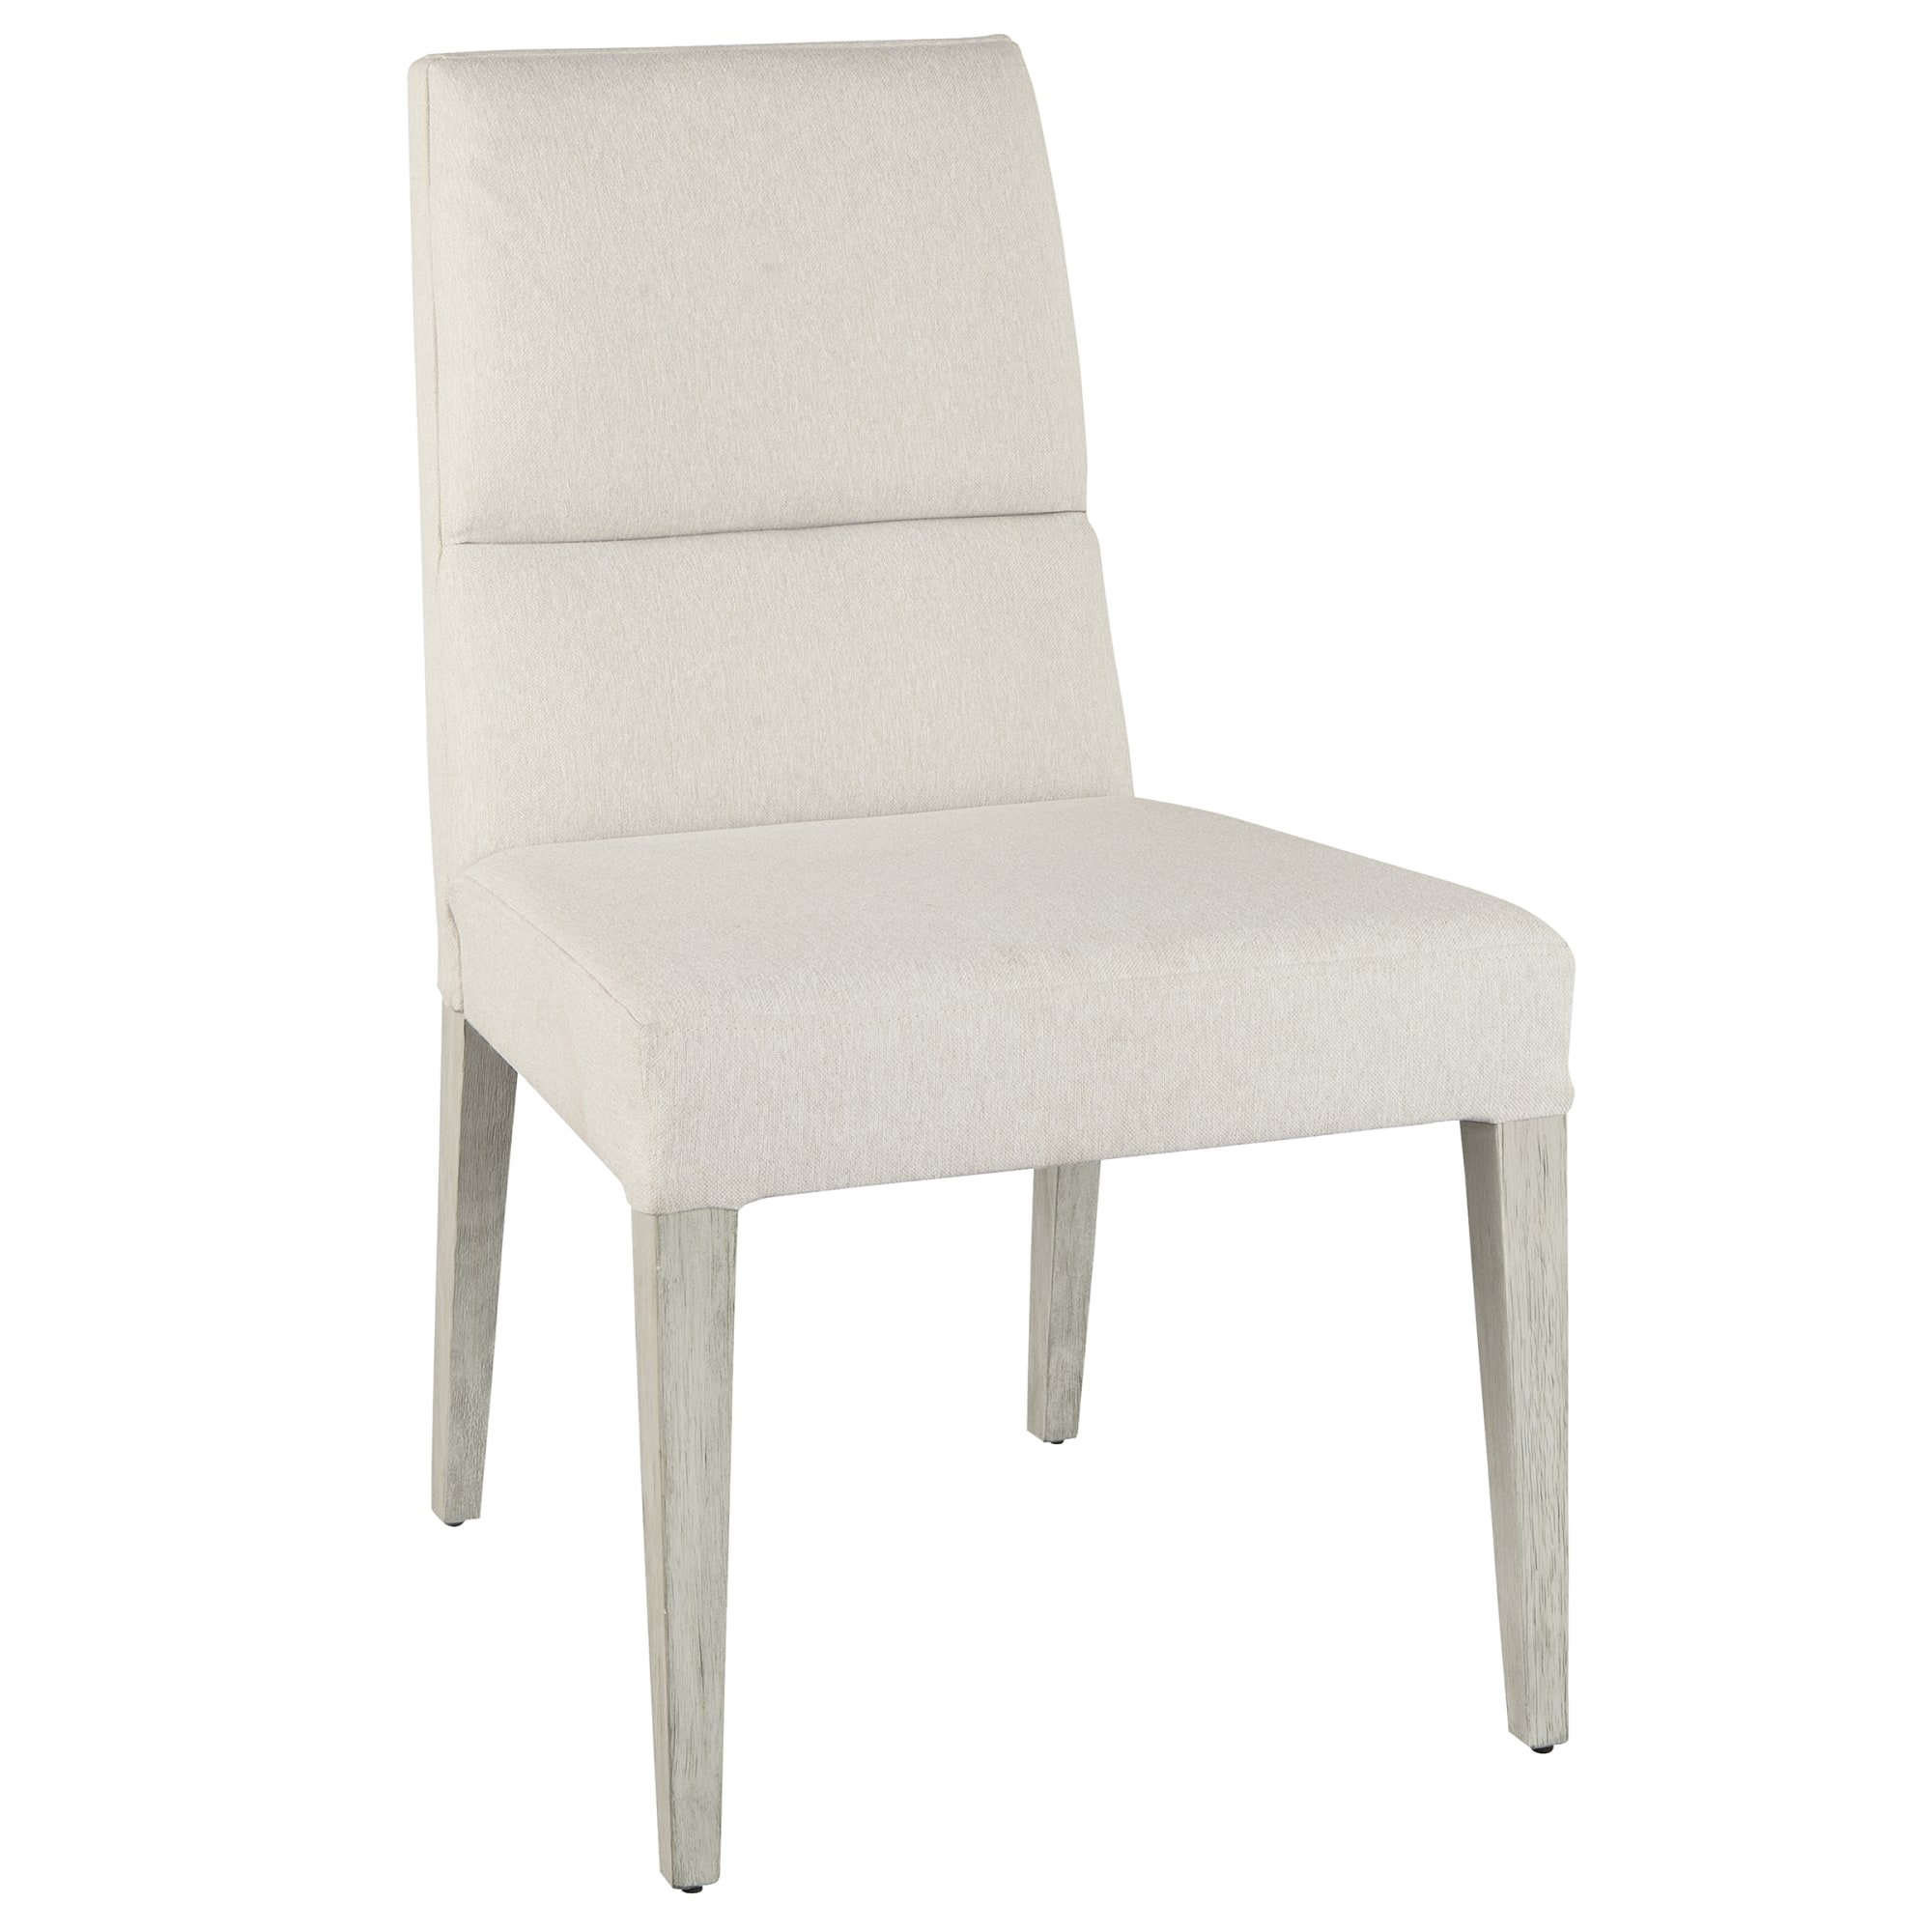 Image for 2-4123 Sierra Heights Uphostered Side Chair from Hekman Official Website